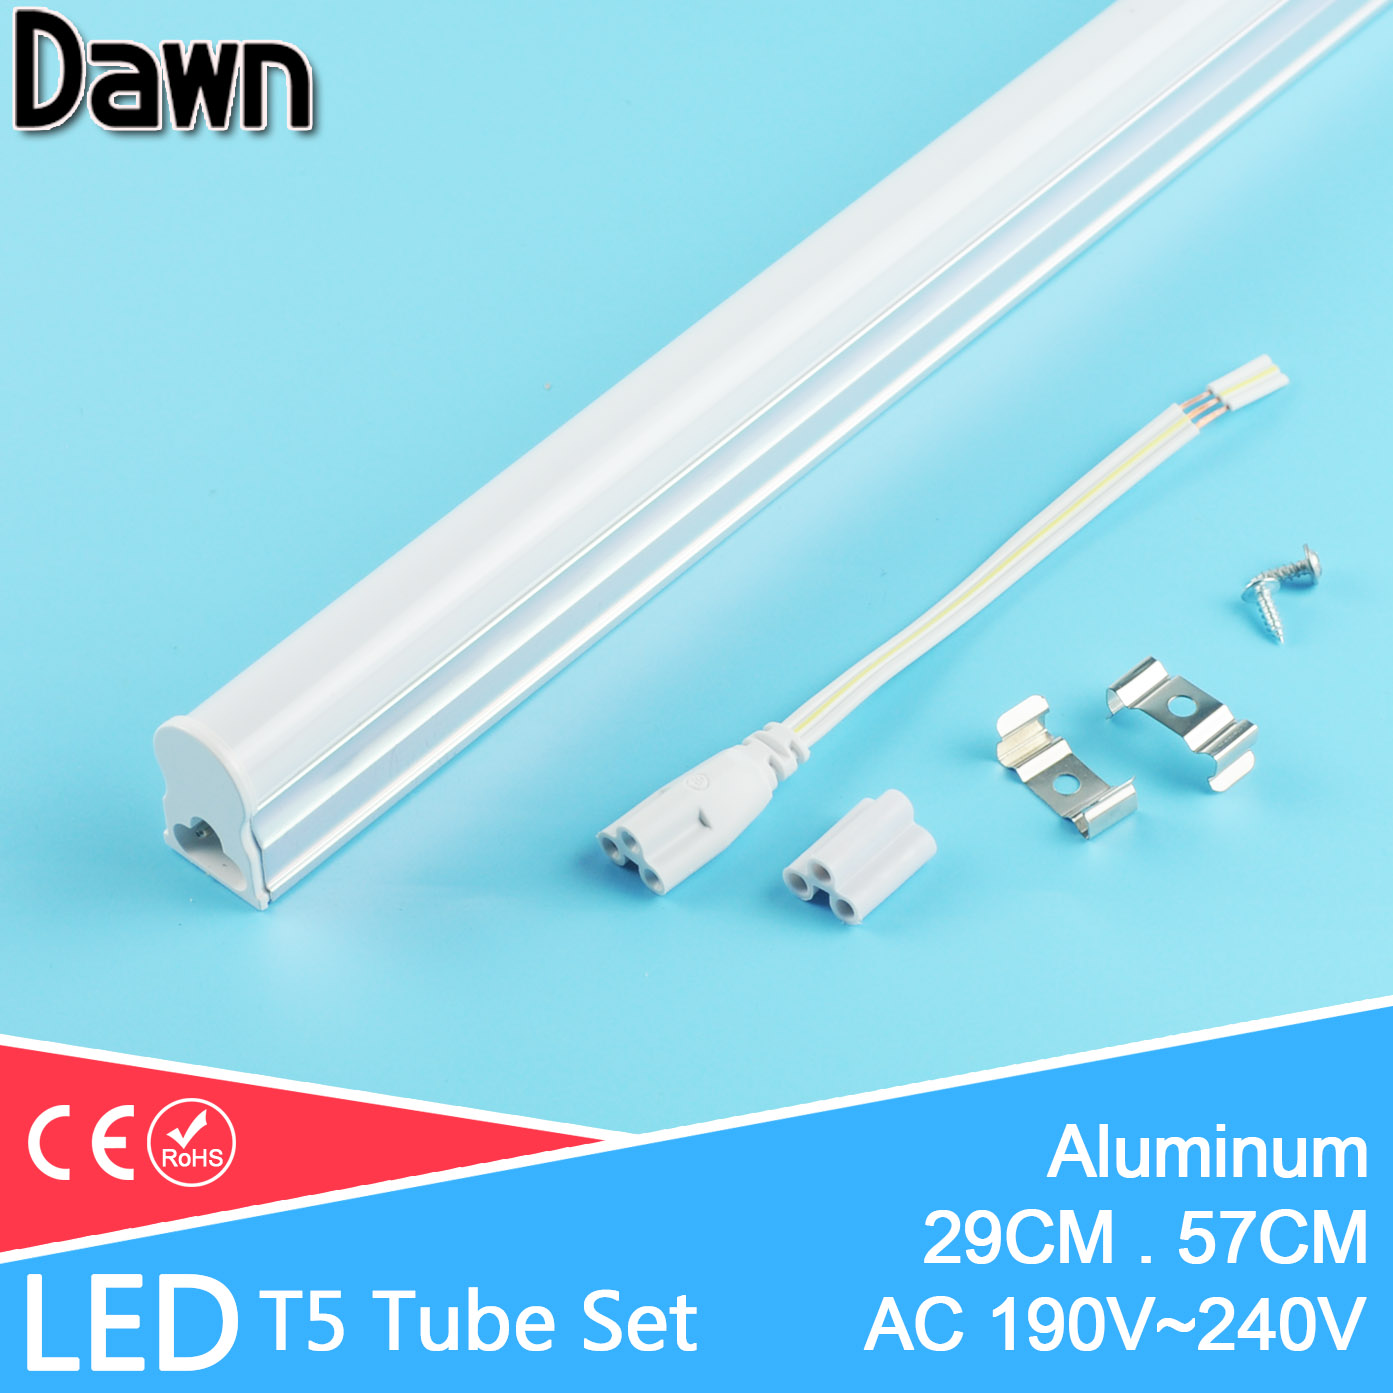 led t5 tube 6w 10w 30cm 60cm 220v 240v led fluorescent light tube led t5 lamps t5 lamp led warm. Black Bedroom Furniture Sets. Home Design Ideas